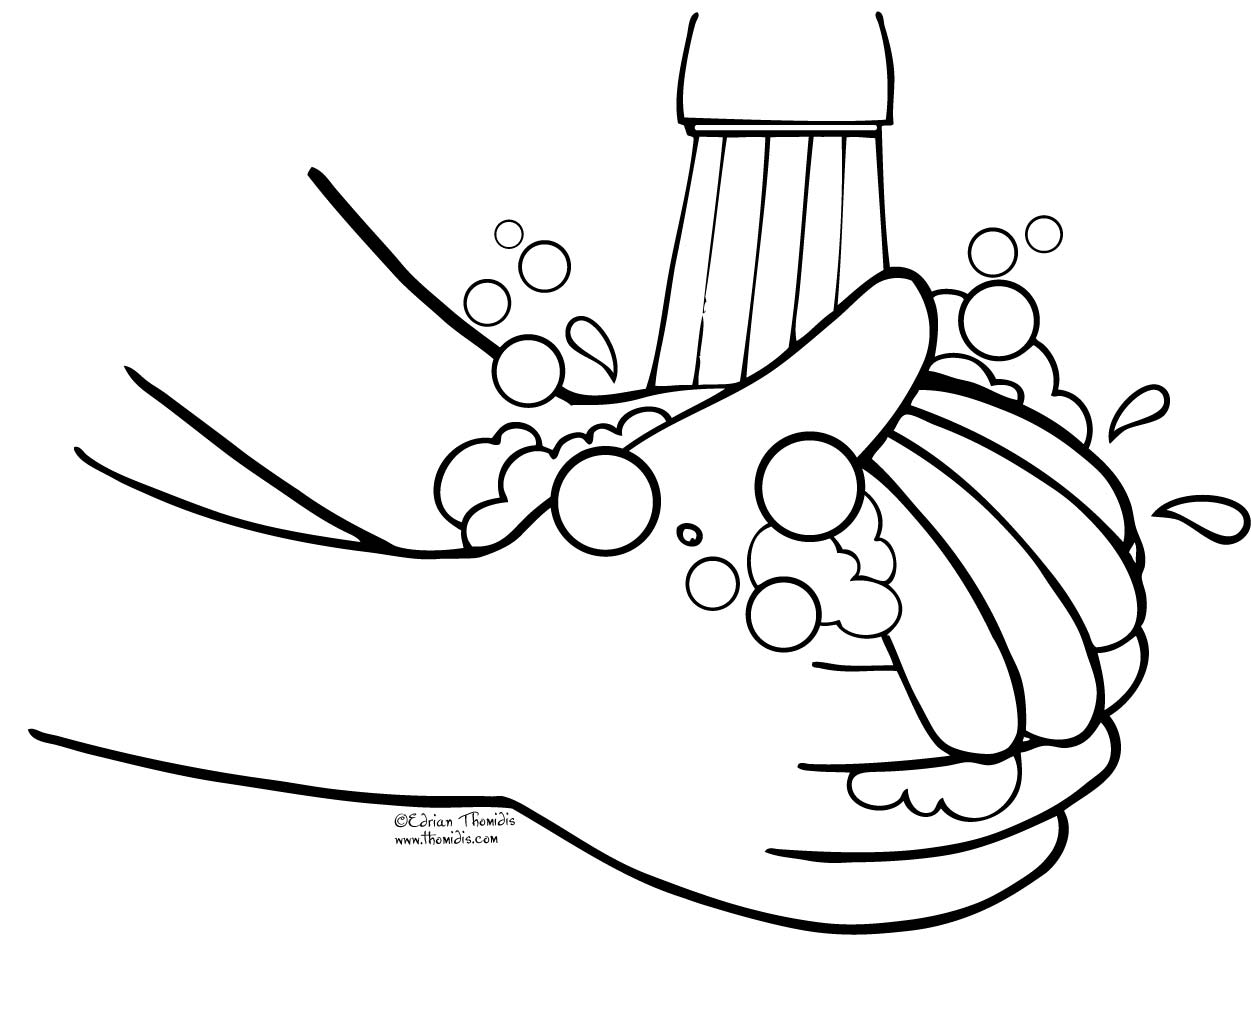 1251x1031 Washing Hands Coloring Pages 511 School School